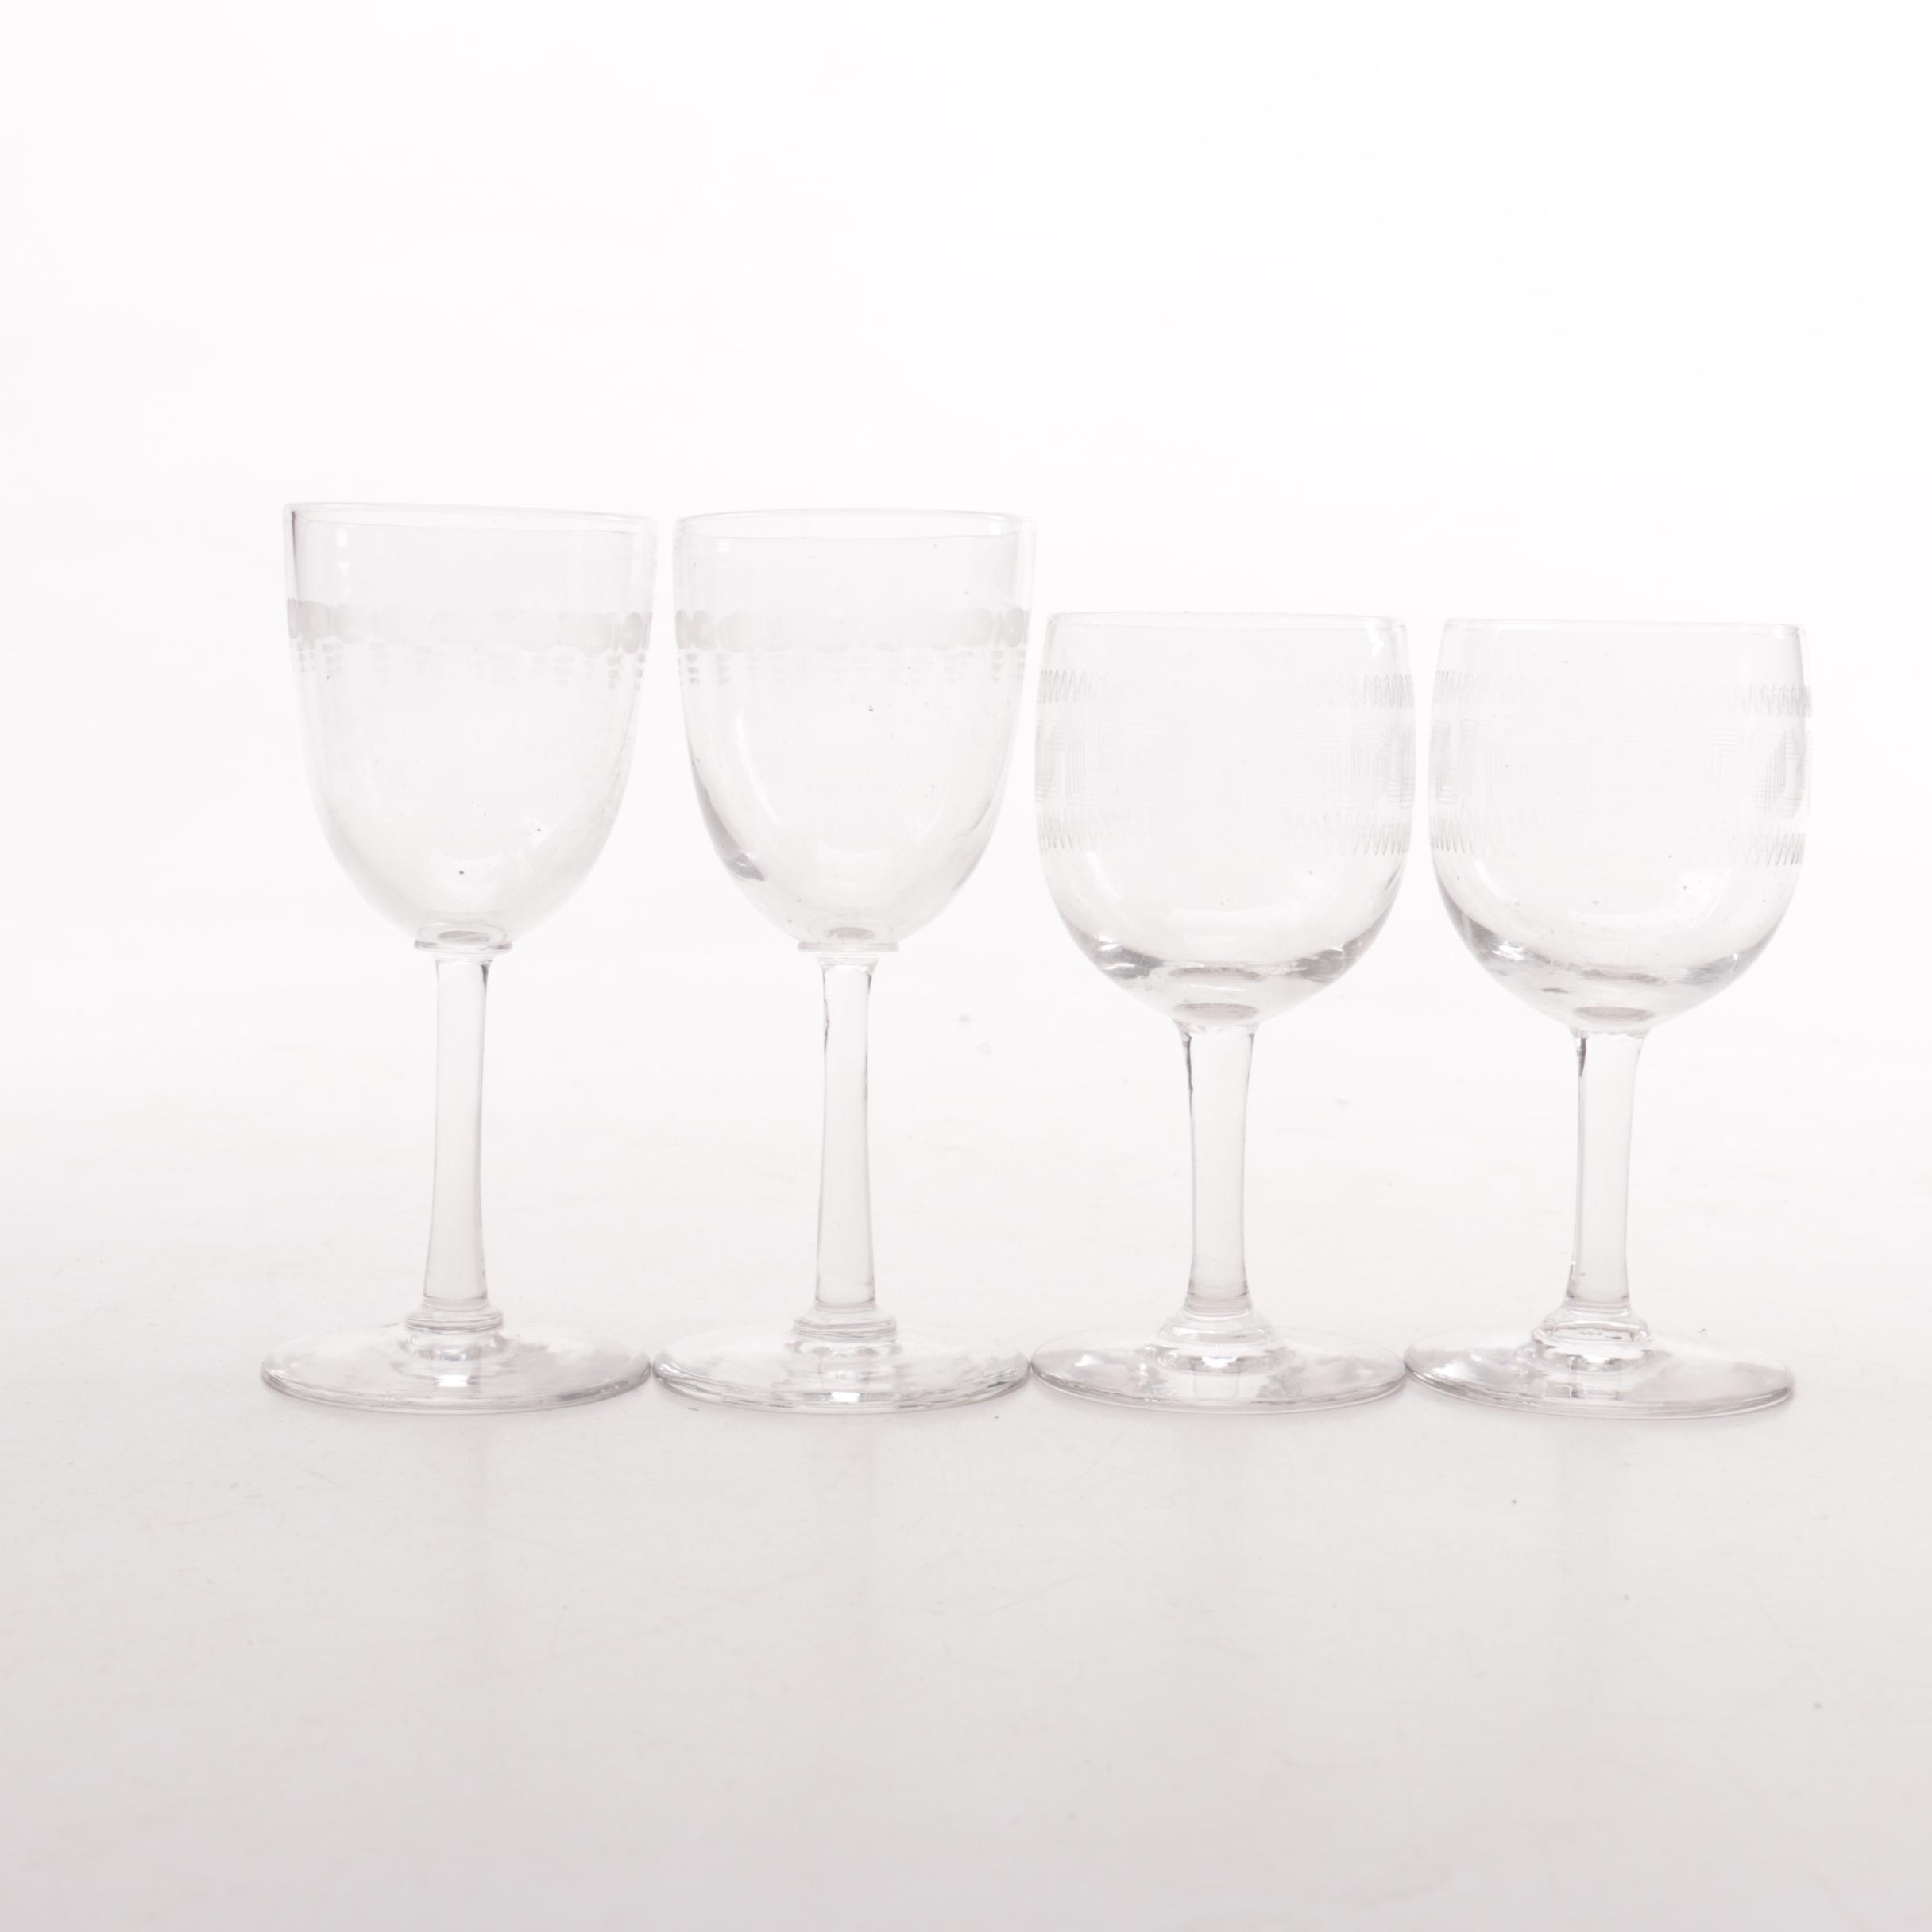 Four Cordial Glasses